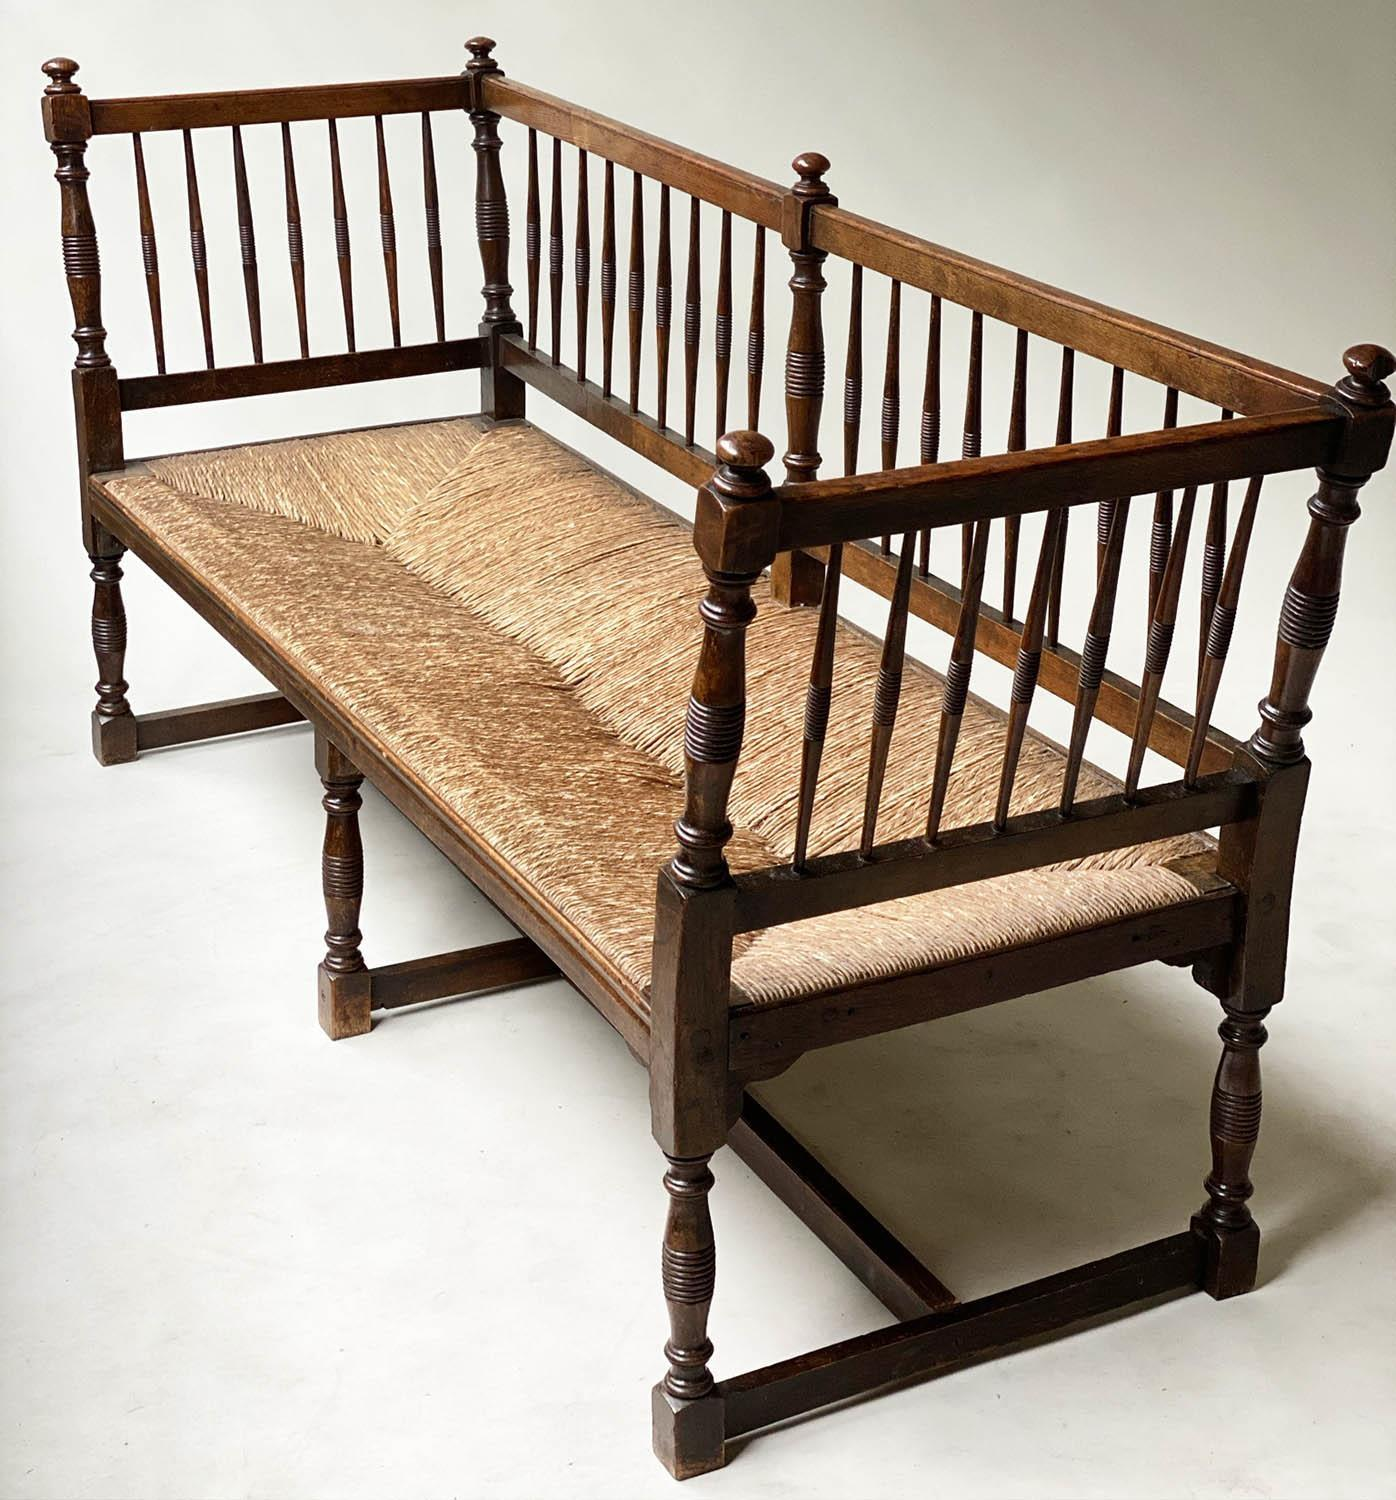 HALL BENCH, 19th century English oak with spindle back rush seat and stretchered turned supports, - Image 9 of 9